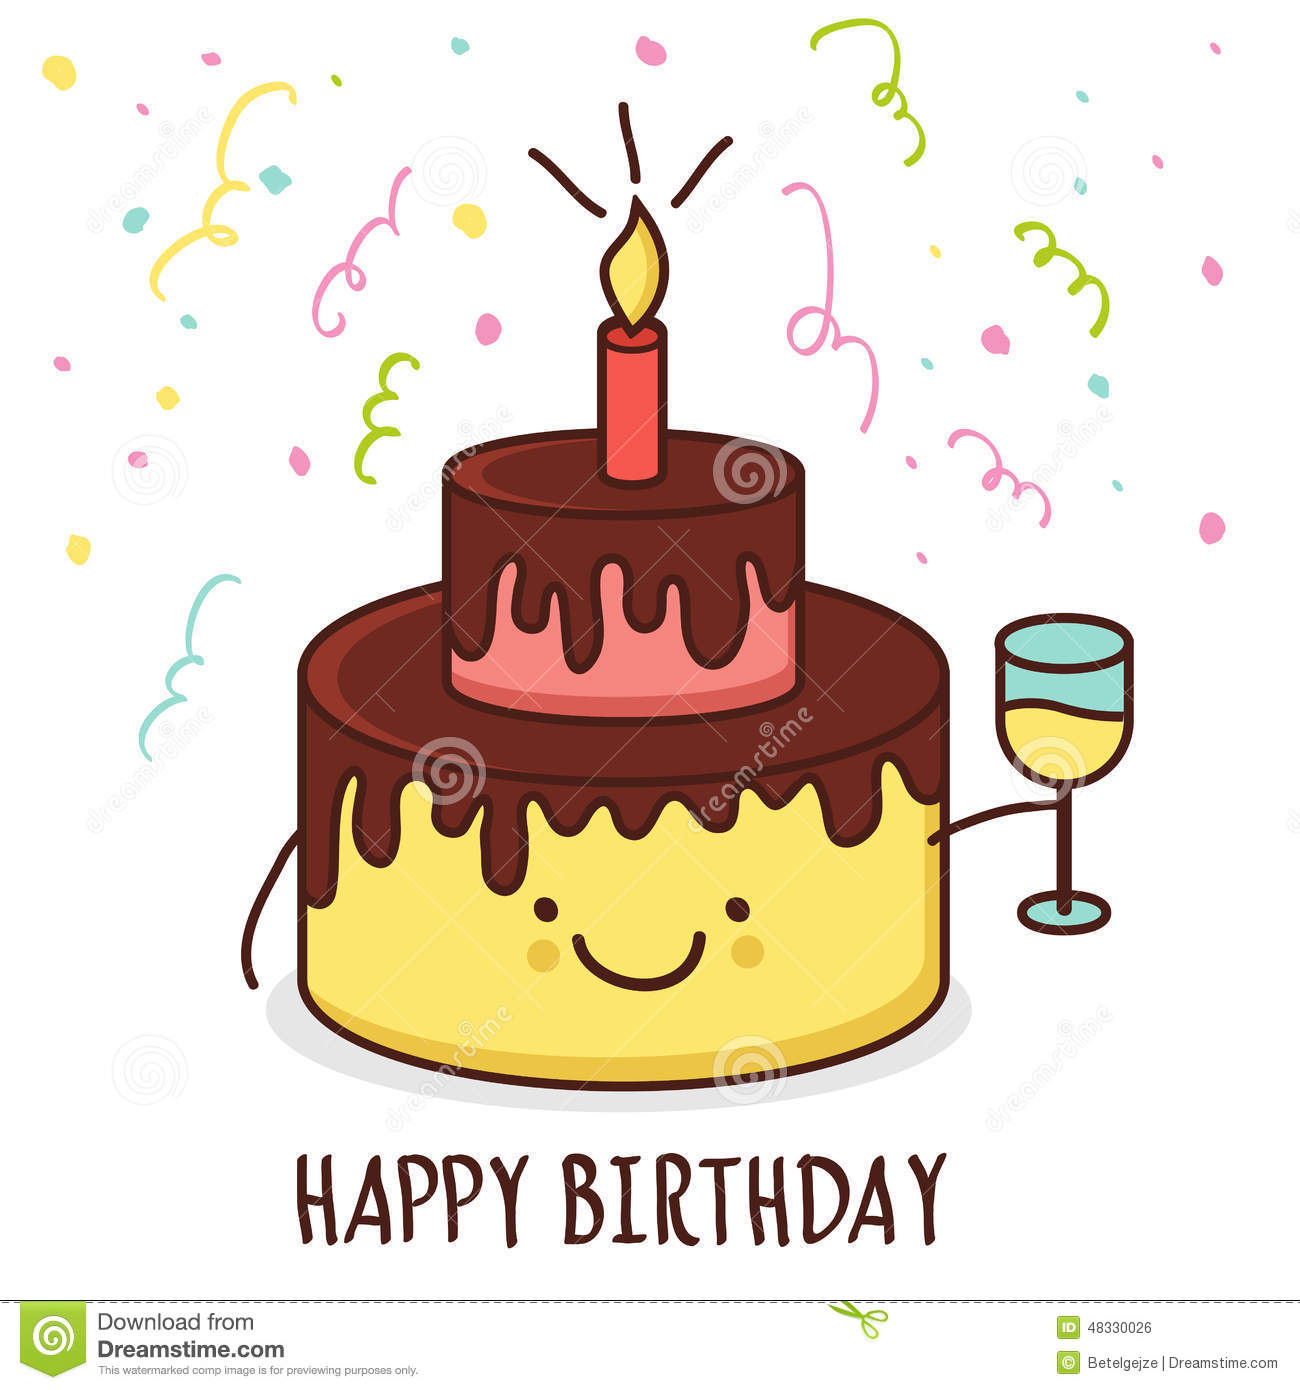 Birthday Cake Pictures Of Cartoon : Cute Cartoon Smiling Cake With Glass Of Champagne. Vector ...